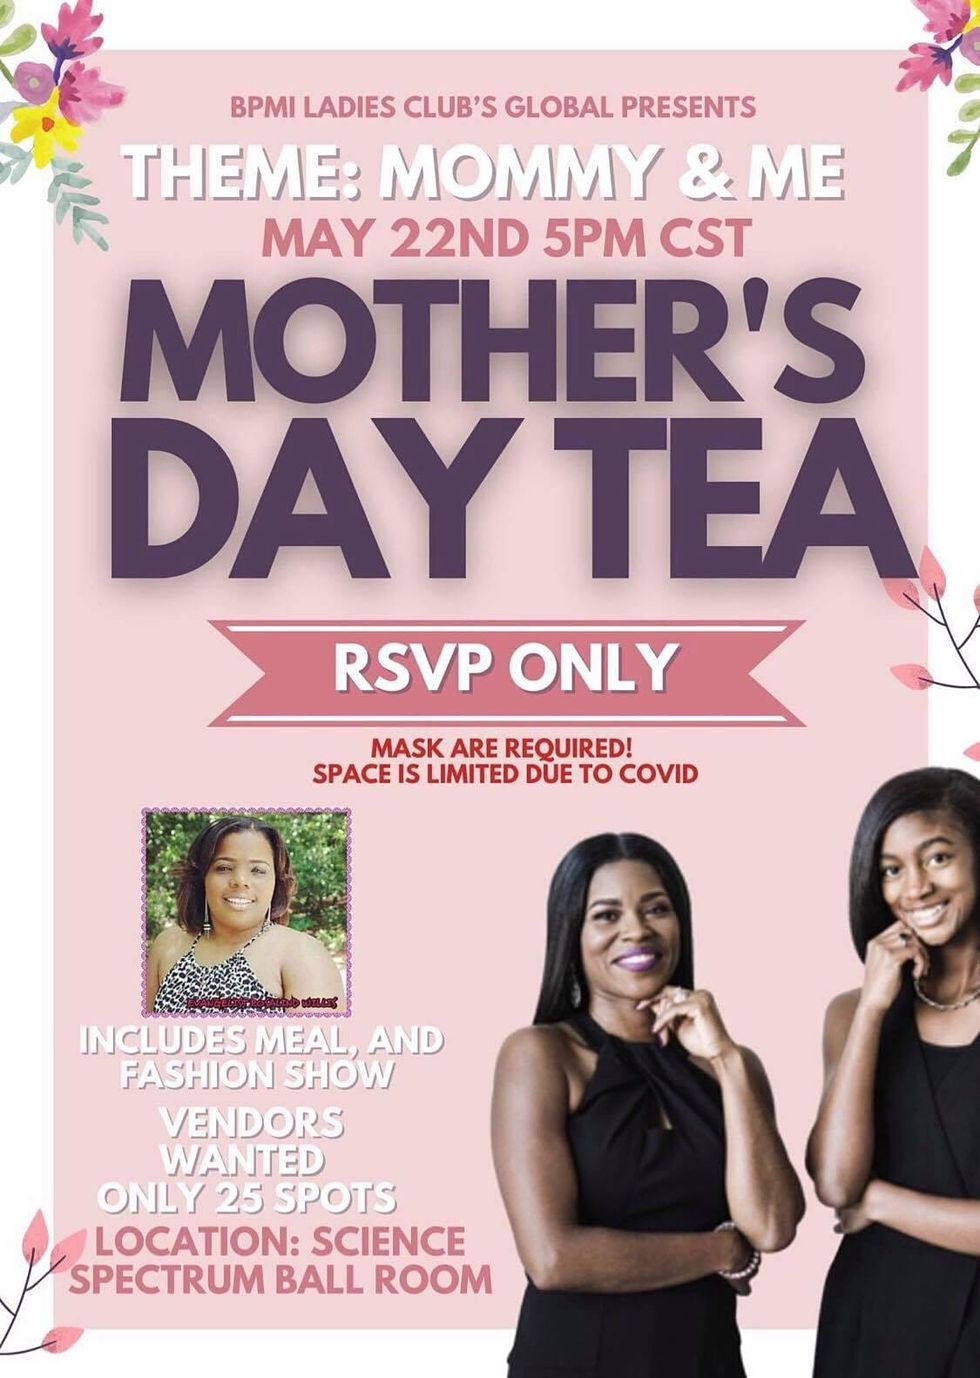 BPMI Ladies Club Global to host Mother's Day Tea at the Science Spectrum Saturday, May 22.